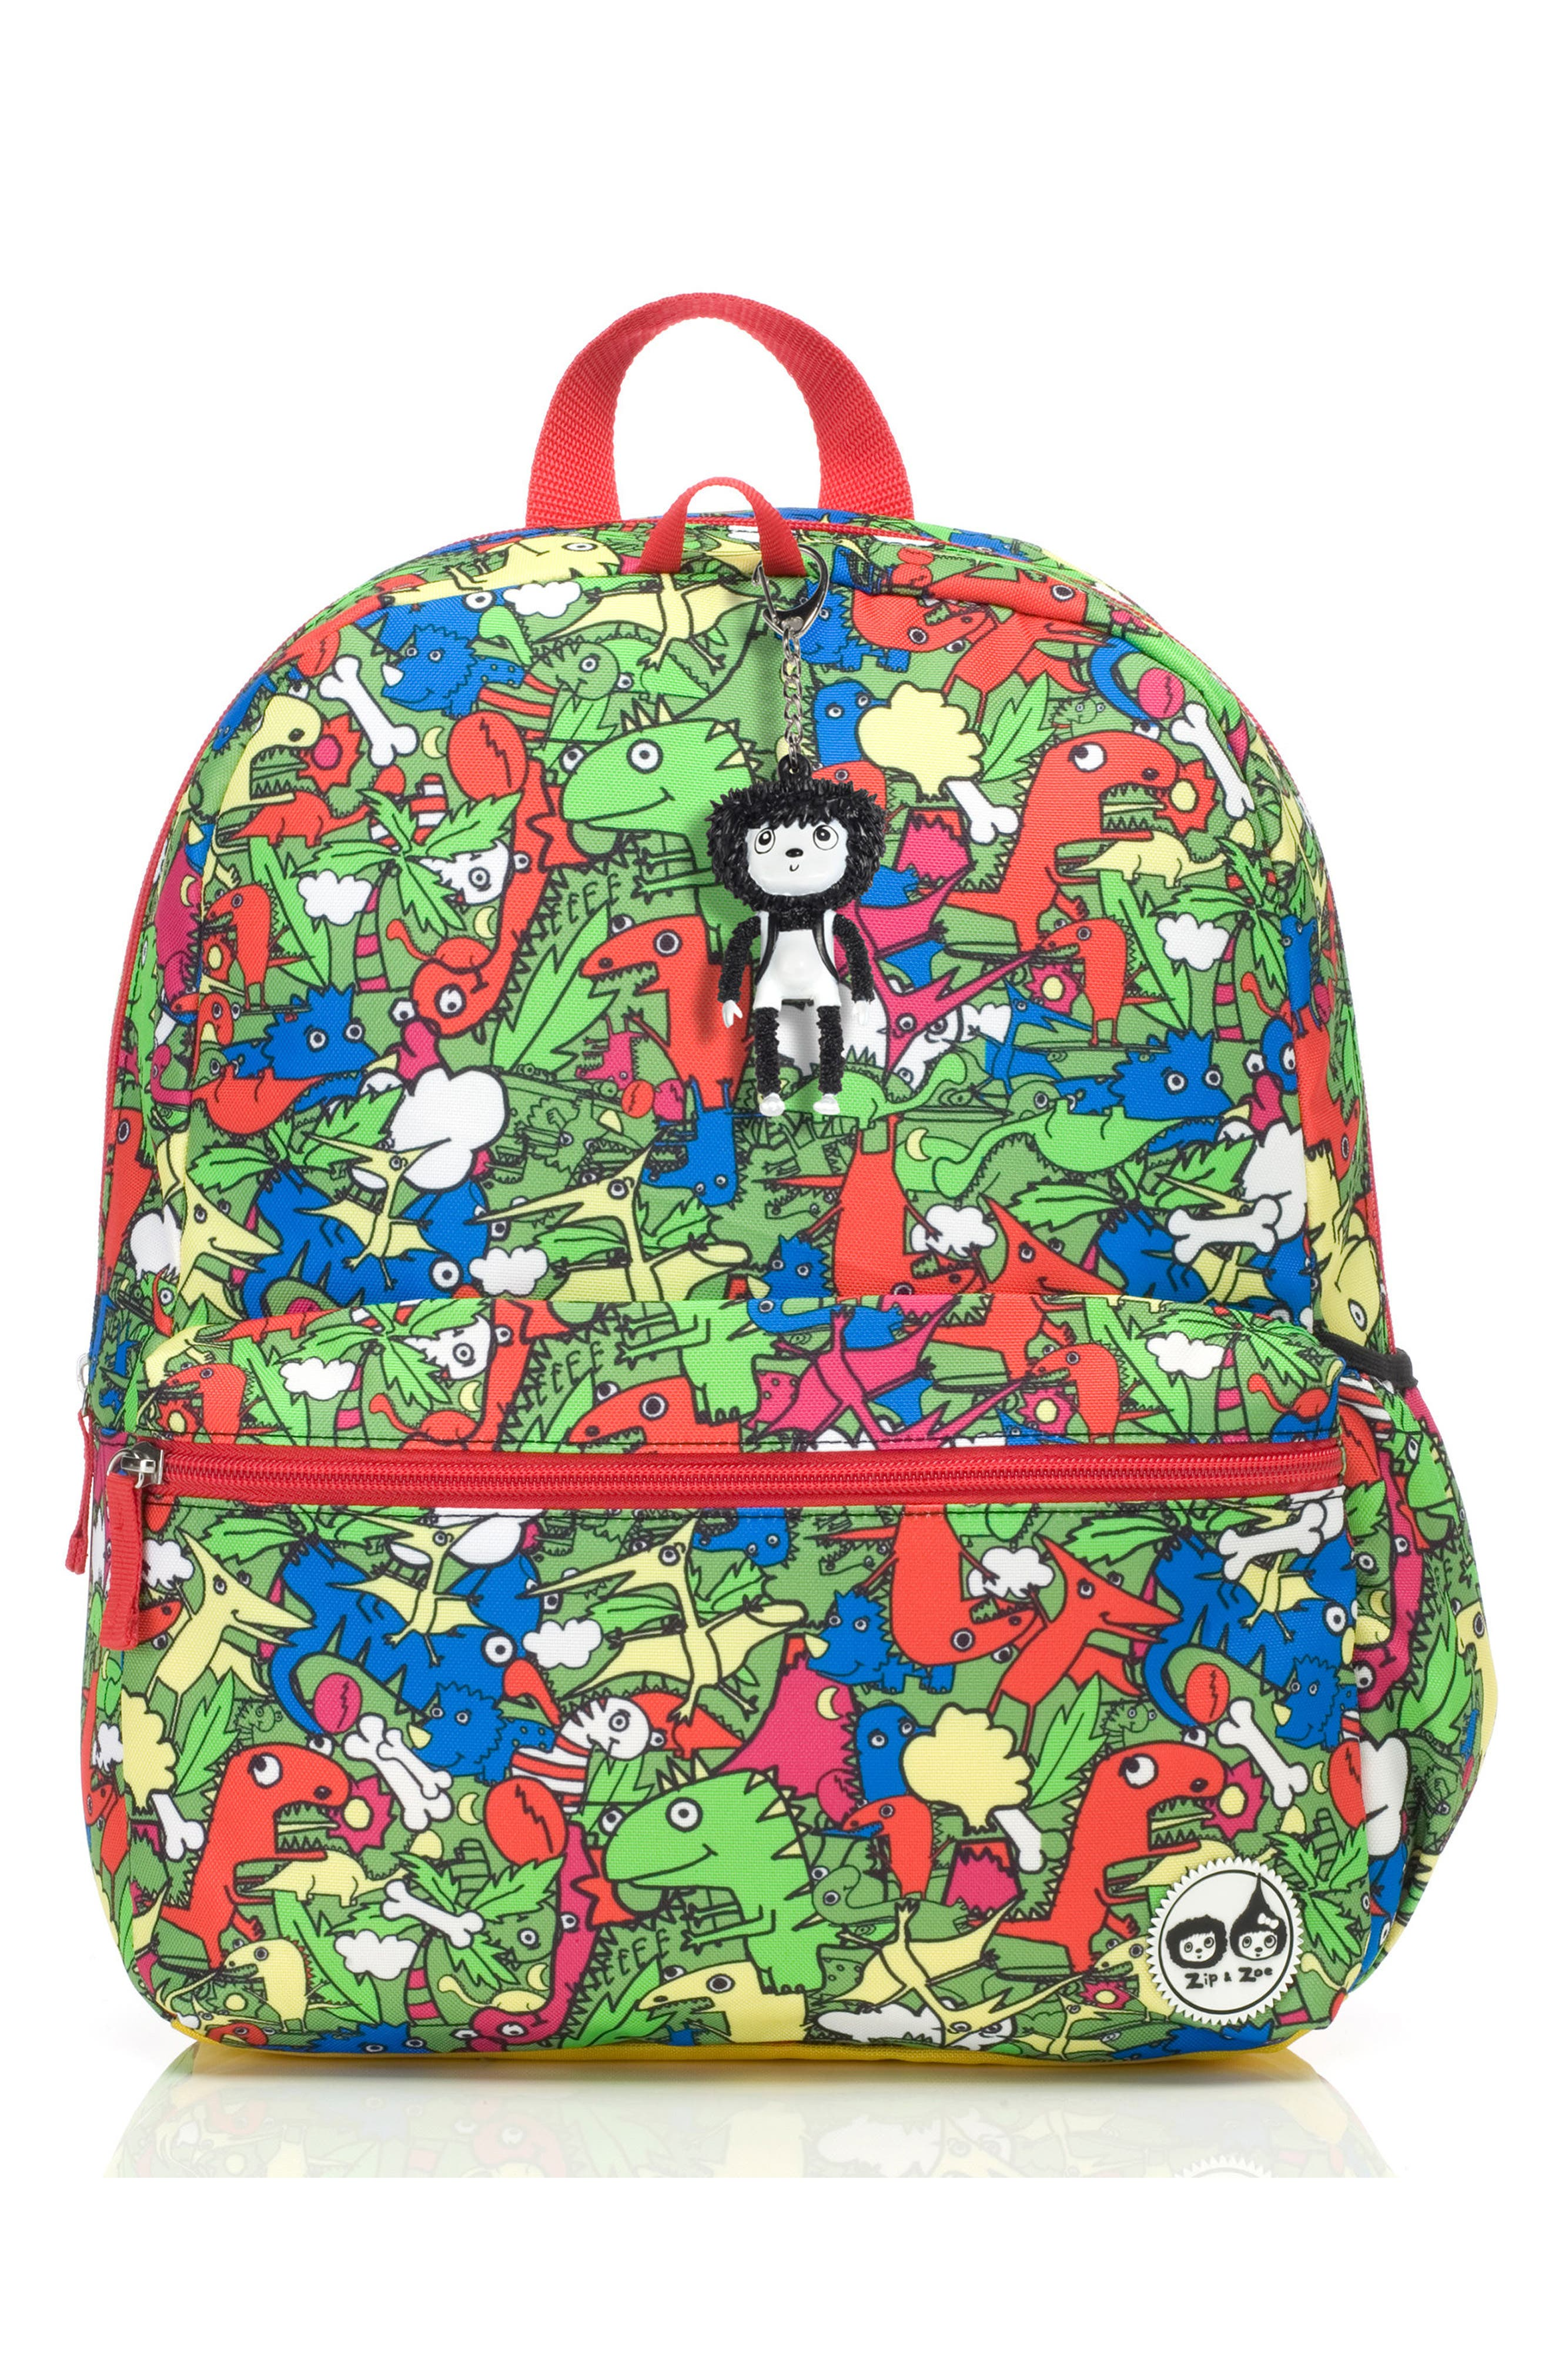 Zip & Zoe Junior Backpack Set,                             Alternate thumbnail 10, color,                             Dino Multi/ Dylan